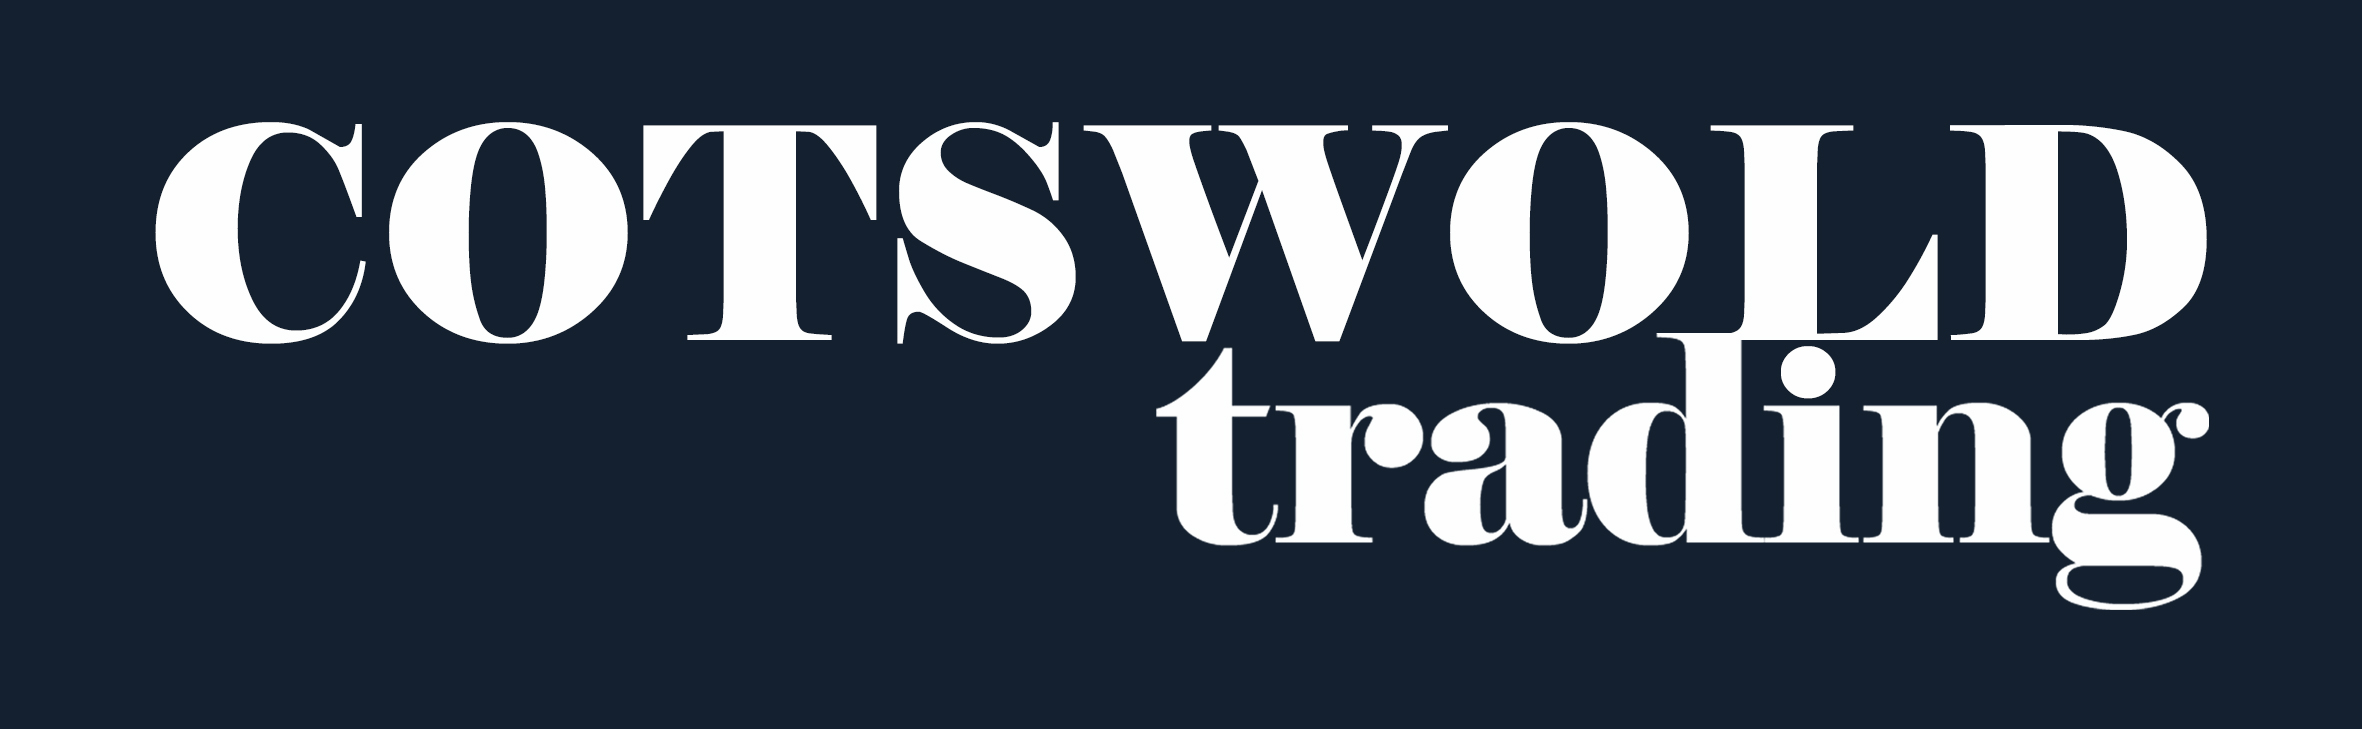 Read Cotswold Trading Reviews